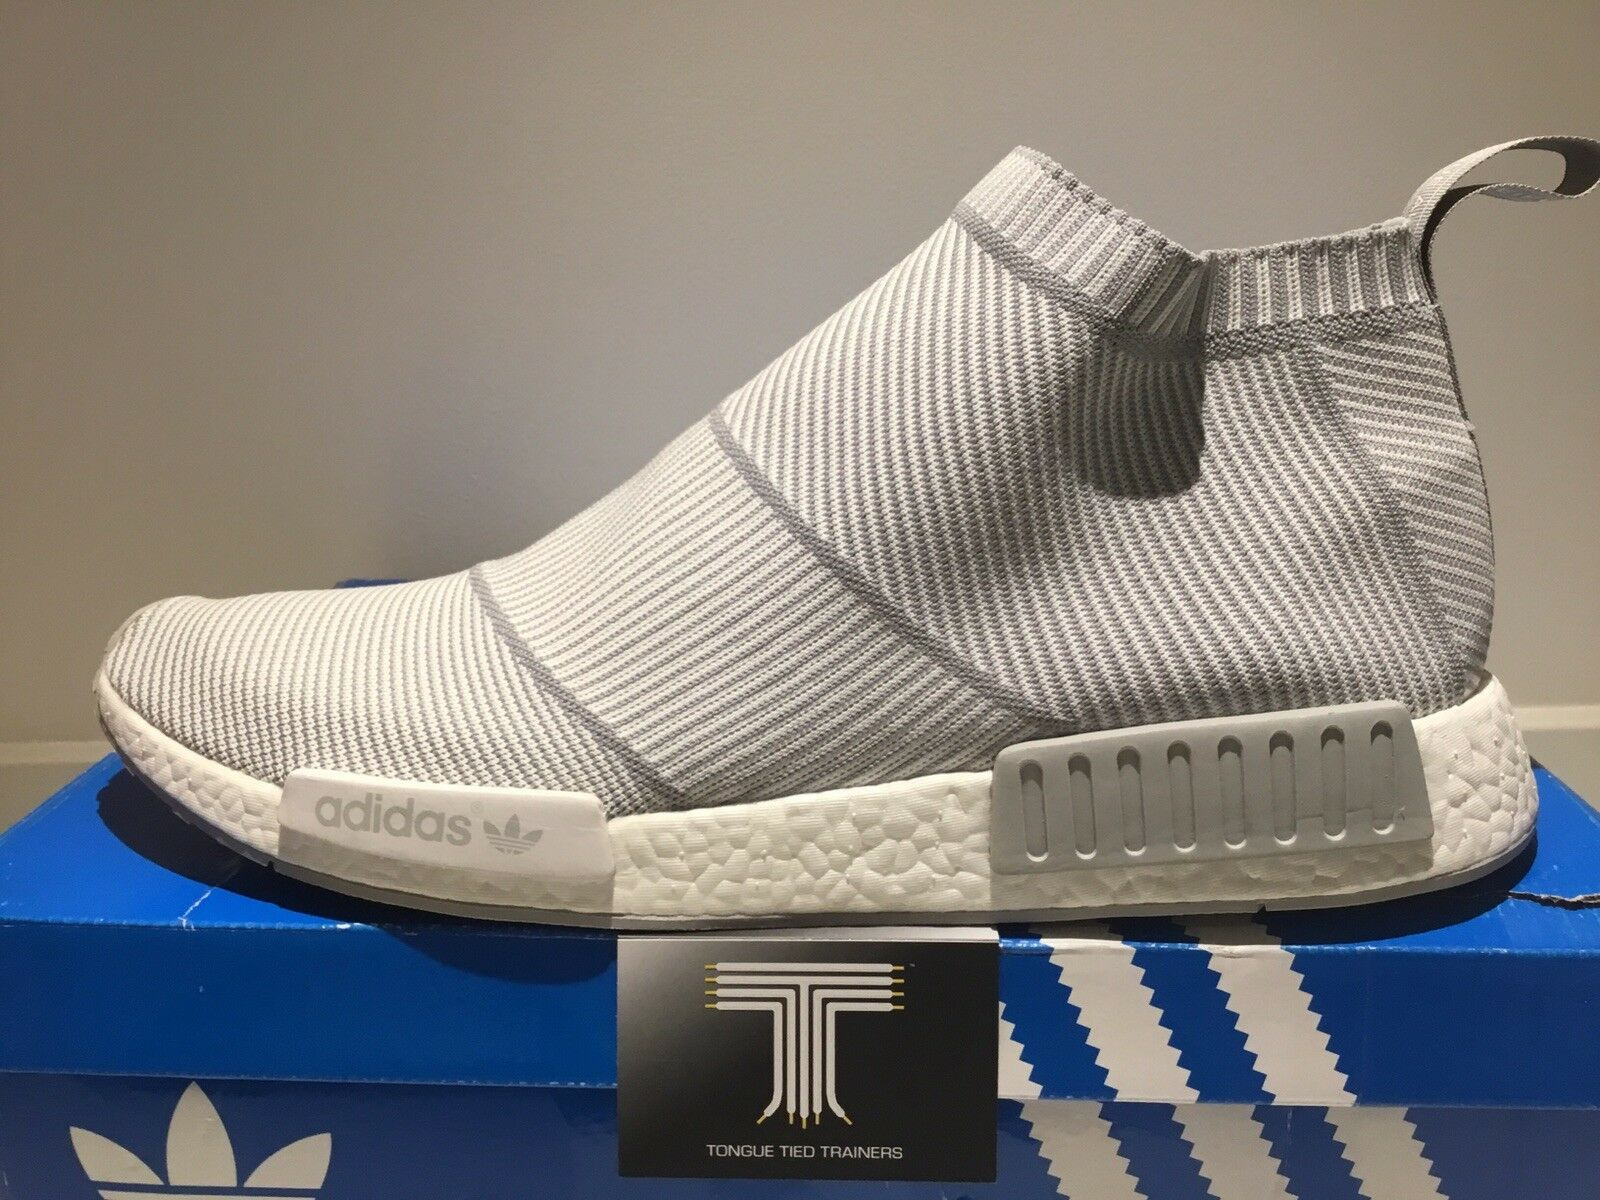 Adidas NMD CS1 PK City Sock Primeknit Uk Größe 18 Service